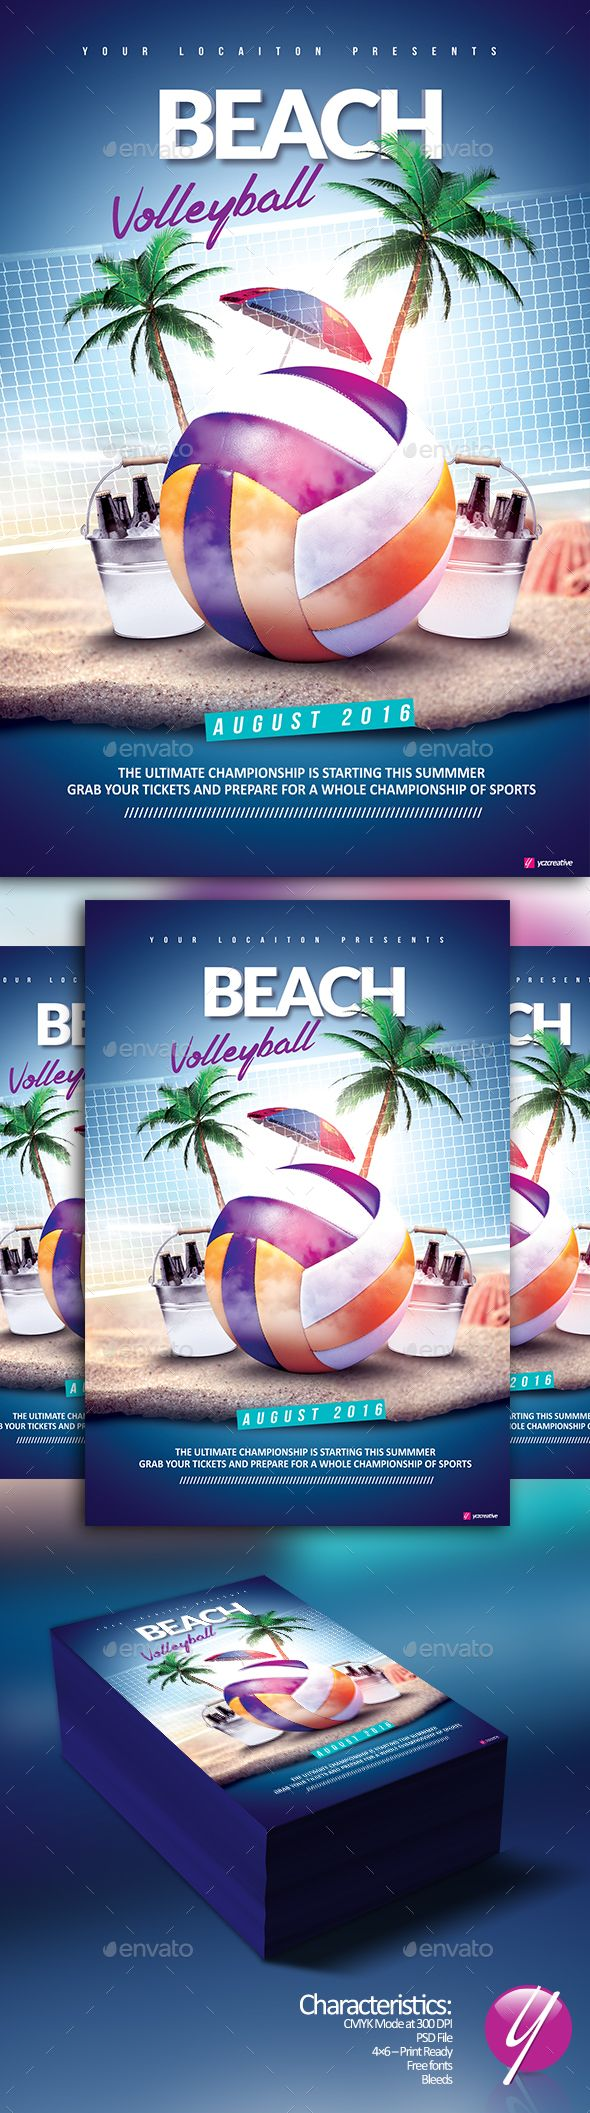 Beach Volleyball Event Flyer Template PSD. Download here: http://graphicriver.net/item/beach-volleyball-event/16684191?ref=ksioks